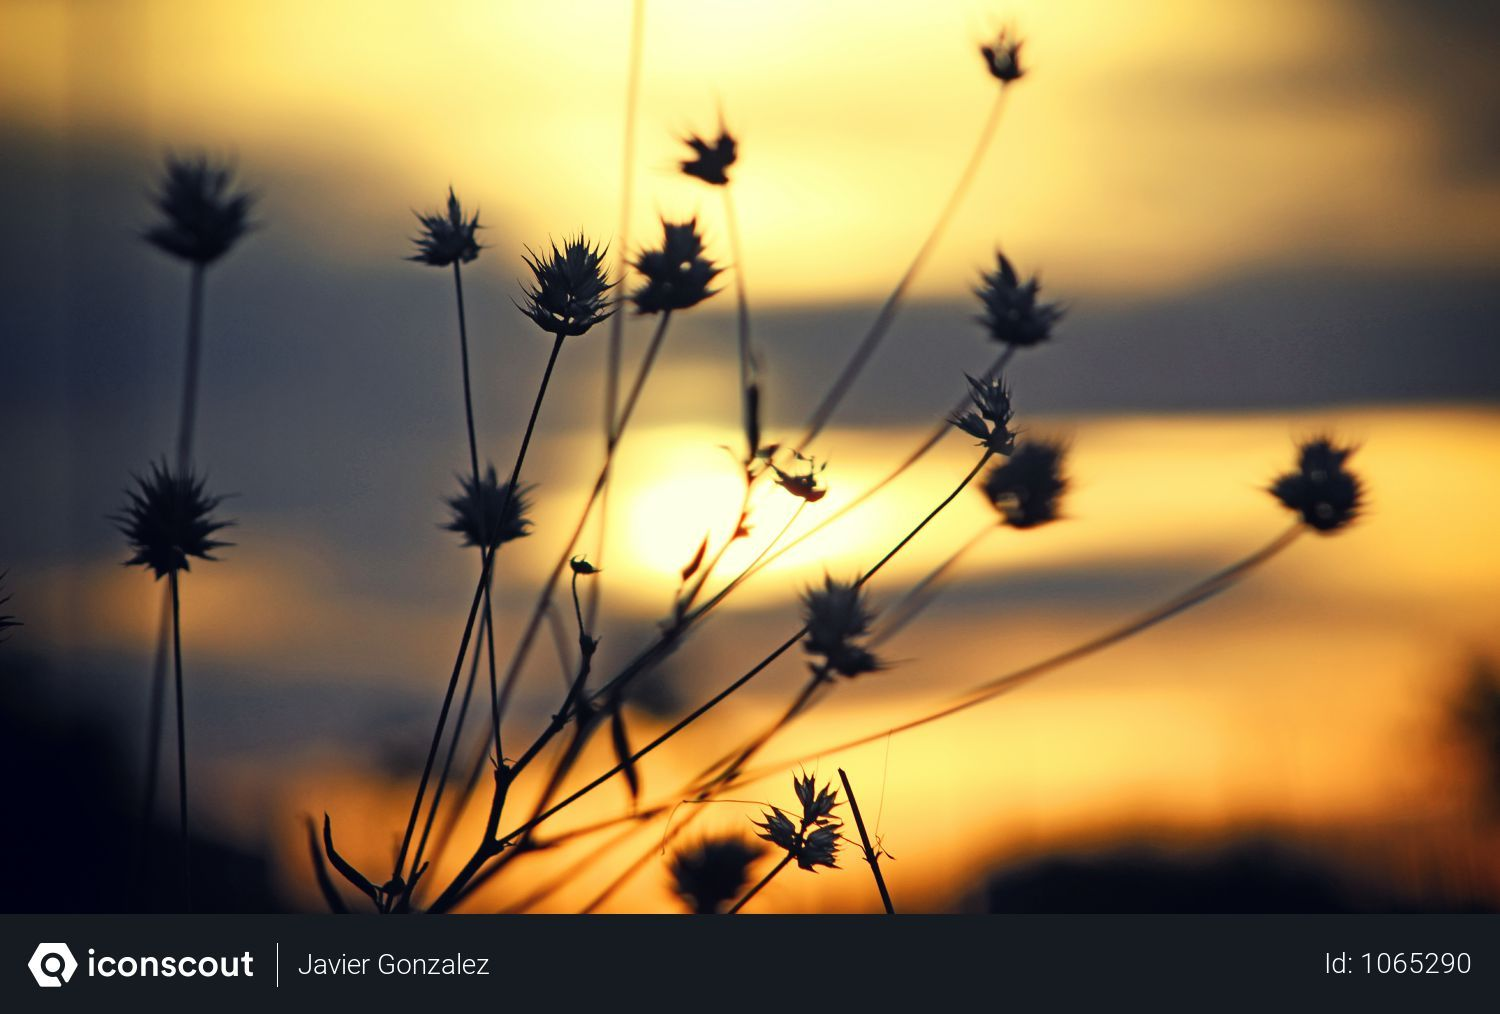 Free Silhouette Photo Of Plants In Morning Photo download